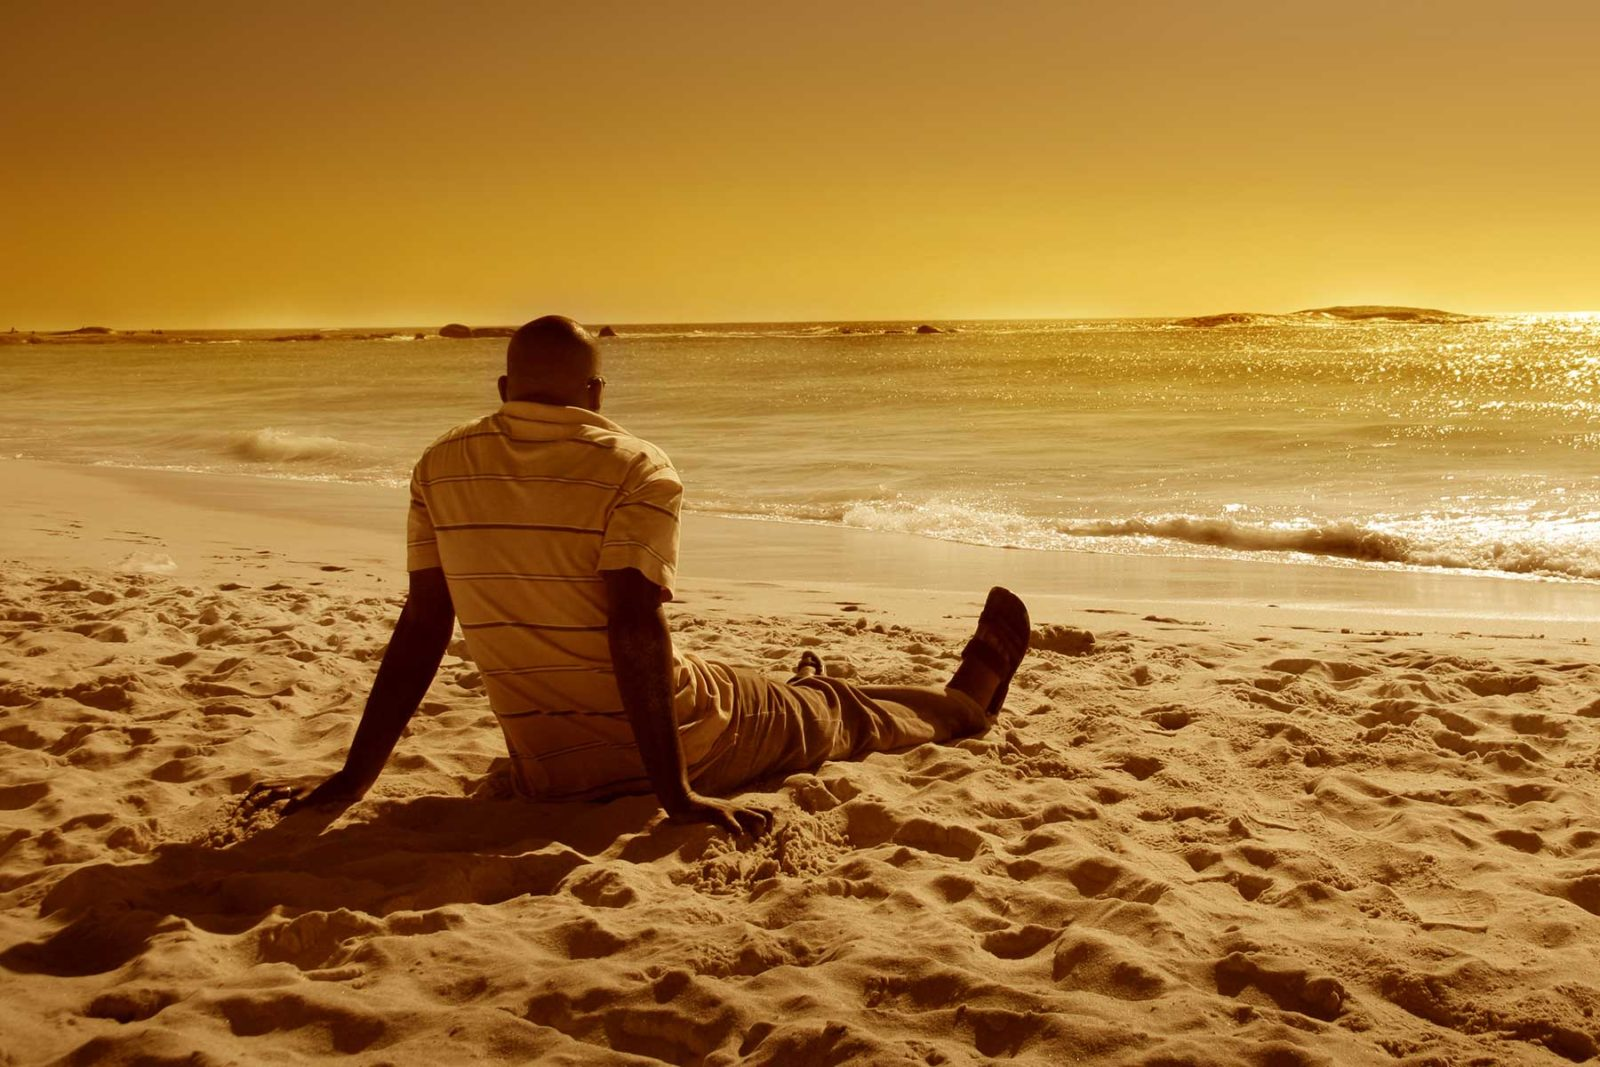 Man having a moment of mindfulness on a beach